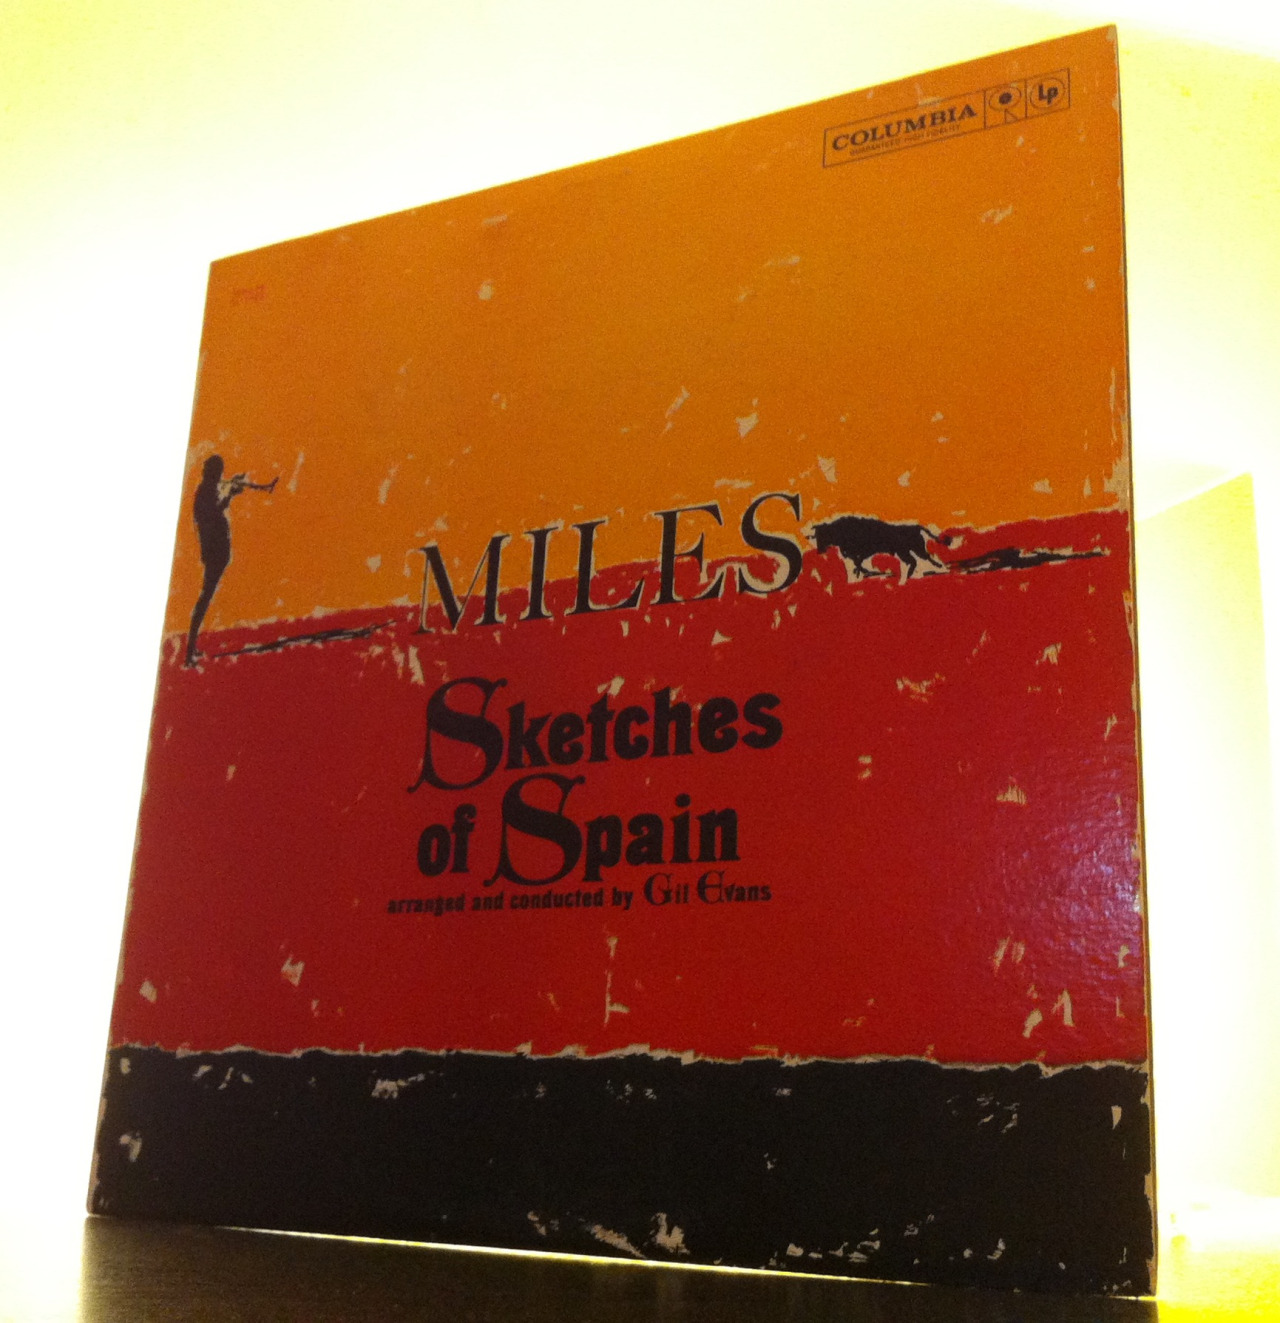 "Miles Davis And Gil Evans Create More Than Mere Sketches Of Spain.      A sketch suggests a work on its way to completion. The beginning of something with potential. The only thing preliminary about this record seems to be its length. But it's not  really  brief at 41 minutes. At least not by twelve inch record standards. The music just happens to you a bit too quickly. It leaves you wanting more. And in that way alone it seems incomplete. But satisfyingly so. Perhaps that's one of the many secrets of this record.   Recorded between Fall of 1959 and Spring of 1960, Sketches of Spain is much more than a rough draft of something more to come. It's a full, emotional portrait of a seemingly beautiful series of events we'll understand later. The orchestra and jazz group that created this masterpiece bring the compositions to life by shaping and coloring them as they play them. The album is composed of five songs magically connected to one another by Miles Davis' flugelhorn. The songs include Concierto De Aranjuez, Will O' The Wisp (from ""El Amor Brujo""), The Pan Piper, Saeta, and Solea.   As I sit here listening – first to a 1980s stereo reissue and then to an original ""six eye"" monophonic copy – I'm impressed by the picture painted by Mr. Davis and Mr. Evans. The recordings seem to be announcing something wonderfully warm but melancholy all the same. At times the record seems to be made up of a tension that builds between a tight jazz group – Miles Davis on flugelhorn, Johnny Coles on trumpet, Paul Chambers on bass, Jimmy Cobb on drums, Elvin Jones on percussion – and an open-armed orchestra that slowly surrounds them, occasionally pressuring them to deliver on their Spanish promise.   It happens to be a cool, rainy Fall day as I attempt to unravel all these Sketches of Spain and what strikes me is the incandescent swirling of amber, russet and golden hues glowing within my mind as I listen to the record over and over. The recordings themselves have warmed my heart and connected me to a time and place I've never been. And that's the rare, wonderful feeling created by Miles Davis, Sketches of Spain, arranged and conducted by Gil Evans. A jazzy, orchestral, Spanish gift to the future from so long ago.      Put on your headphones, close your eyes and float over the Iberian peninsula by clicking this very sentence.     For Weirdos Only:    As I mentioned above, I reviewed a 1980s stereo pressing and an original mono ""six-eye"" pressing. I expected huge differences between the two. The differences weren't huge. Don't get me wrong, there are differences. The mono copy has more immediacy and force. More punch. But the stereo reissue sounded good too. More enveloping. As is typical of any comparison of the same recordings pressed some thirty years apart, there's some loss of information over the years. There's just not as much music in the grooves of the reissue. So what? It's still great. Those two pressings weren't enough for me anyway. I put on a compact disc copy of Sketches of Spain from the Miles Davis/Gil Evans Complete Columbia Studio Recordings (burned from my brother's box set). While the cd sounded clear as a bell it also sounded the most different. The mixes sound different too. I bet they are. Too trebly. That said, it's not like I suddenly and shockingly thought I was listening to Jim Nabors singing the Whiffenpoof Song. It was still Miles, man. My guess? The copy to own is the original stereo six-eye Columbia pressing."